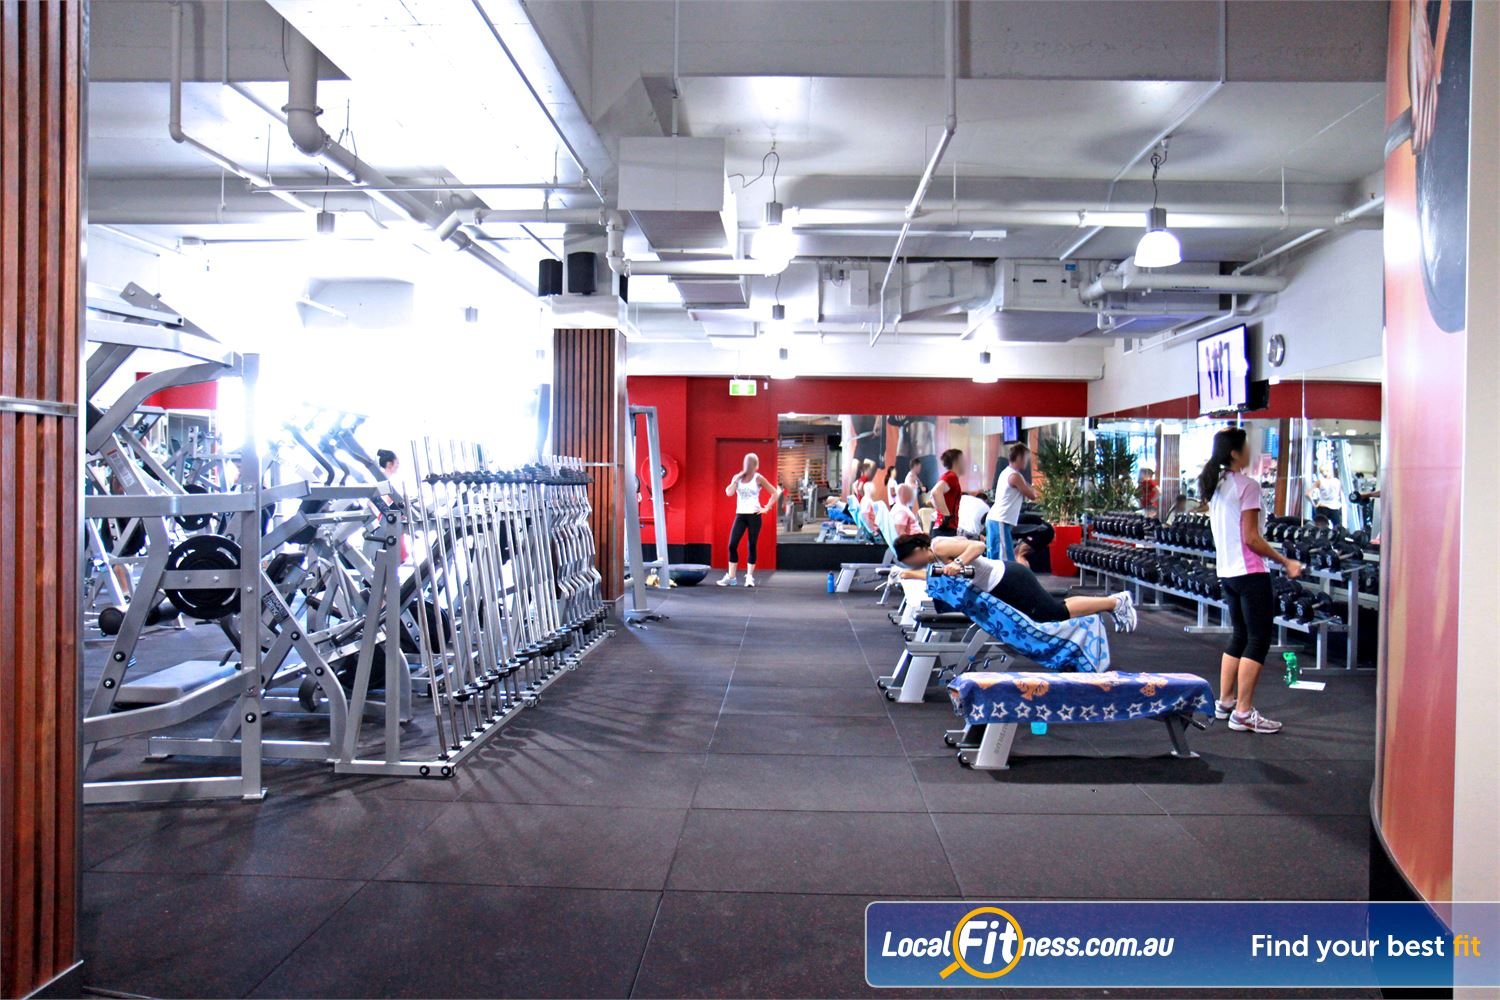 Goodlife Health Clubs Robina Our Robina gym offers a complete range of free-weights and plate loading equipment.<br /><br />